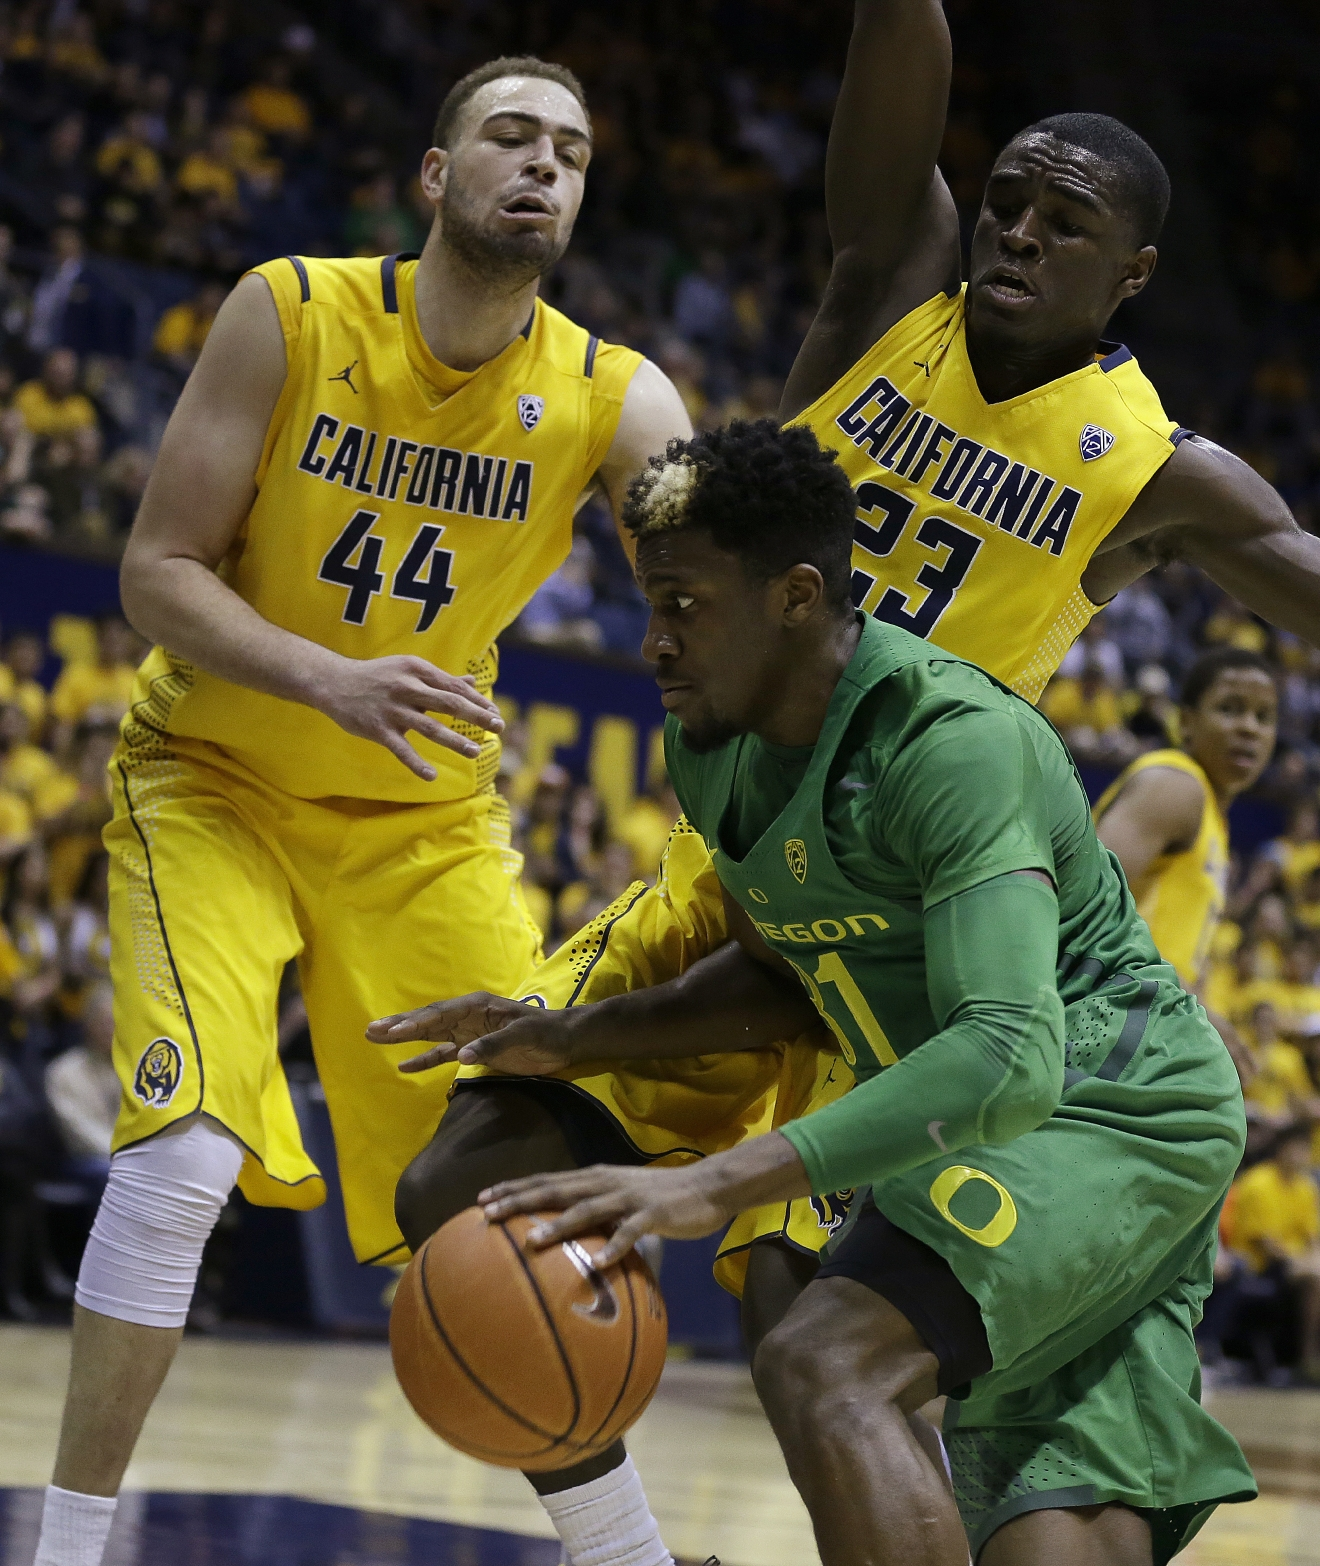 Oregon's Dylan Ennis, center, drives the ball between California's Kameron Rooks (44) and Jabari Bird (23) in the first half of an NCAA college basketball game Wednesday, Feb. 22, 2017, in Berkeley, Calif. (AP Photo/Ben Margot)